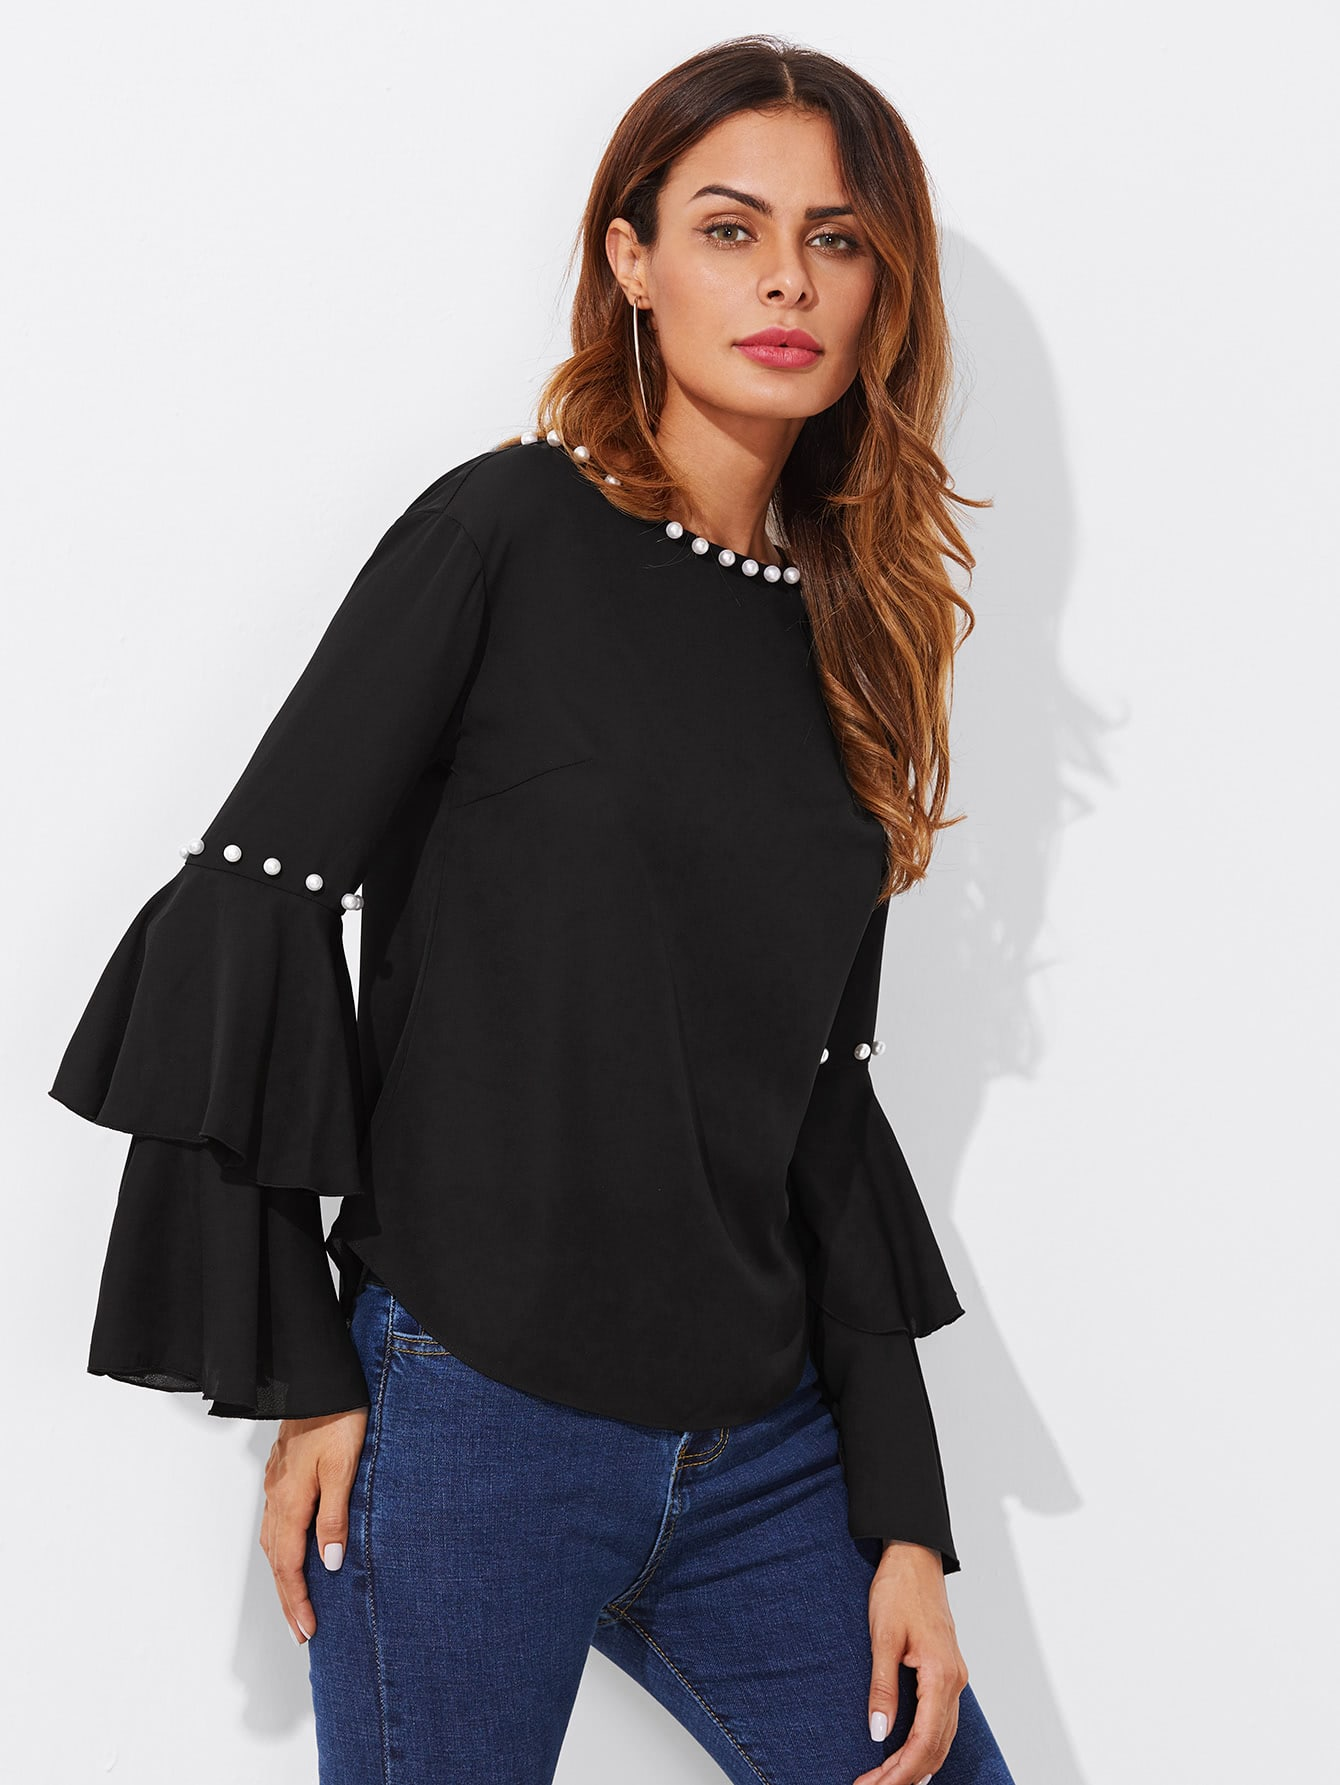 Tiered Trumpet Sleeve Pearl Embellished Blouse elegant trumpet sleeve open back blouse